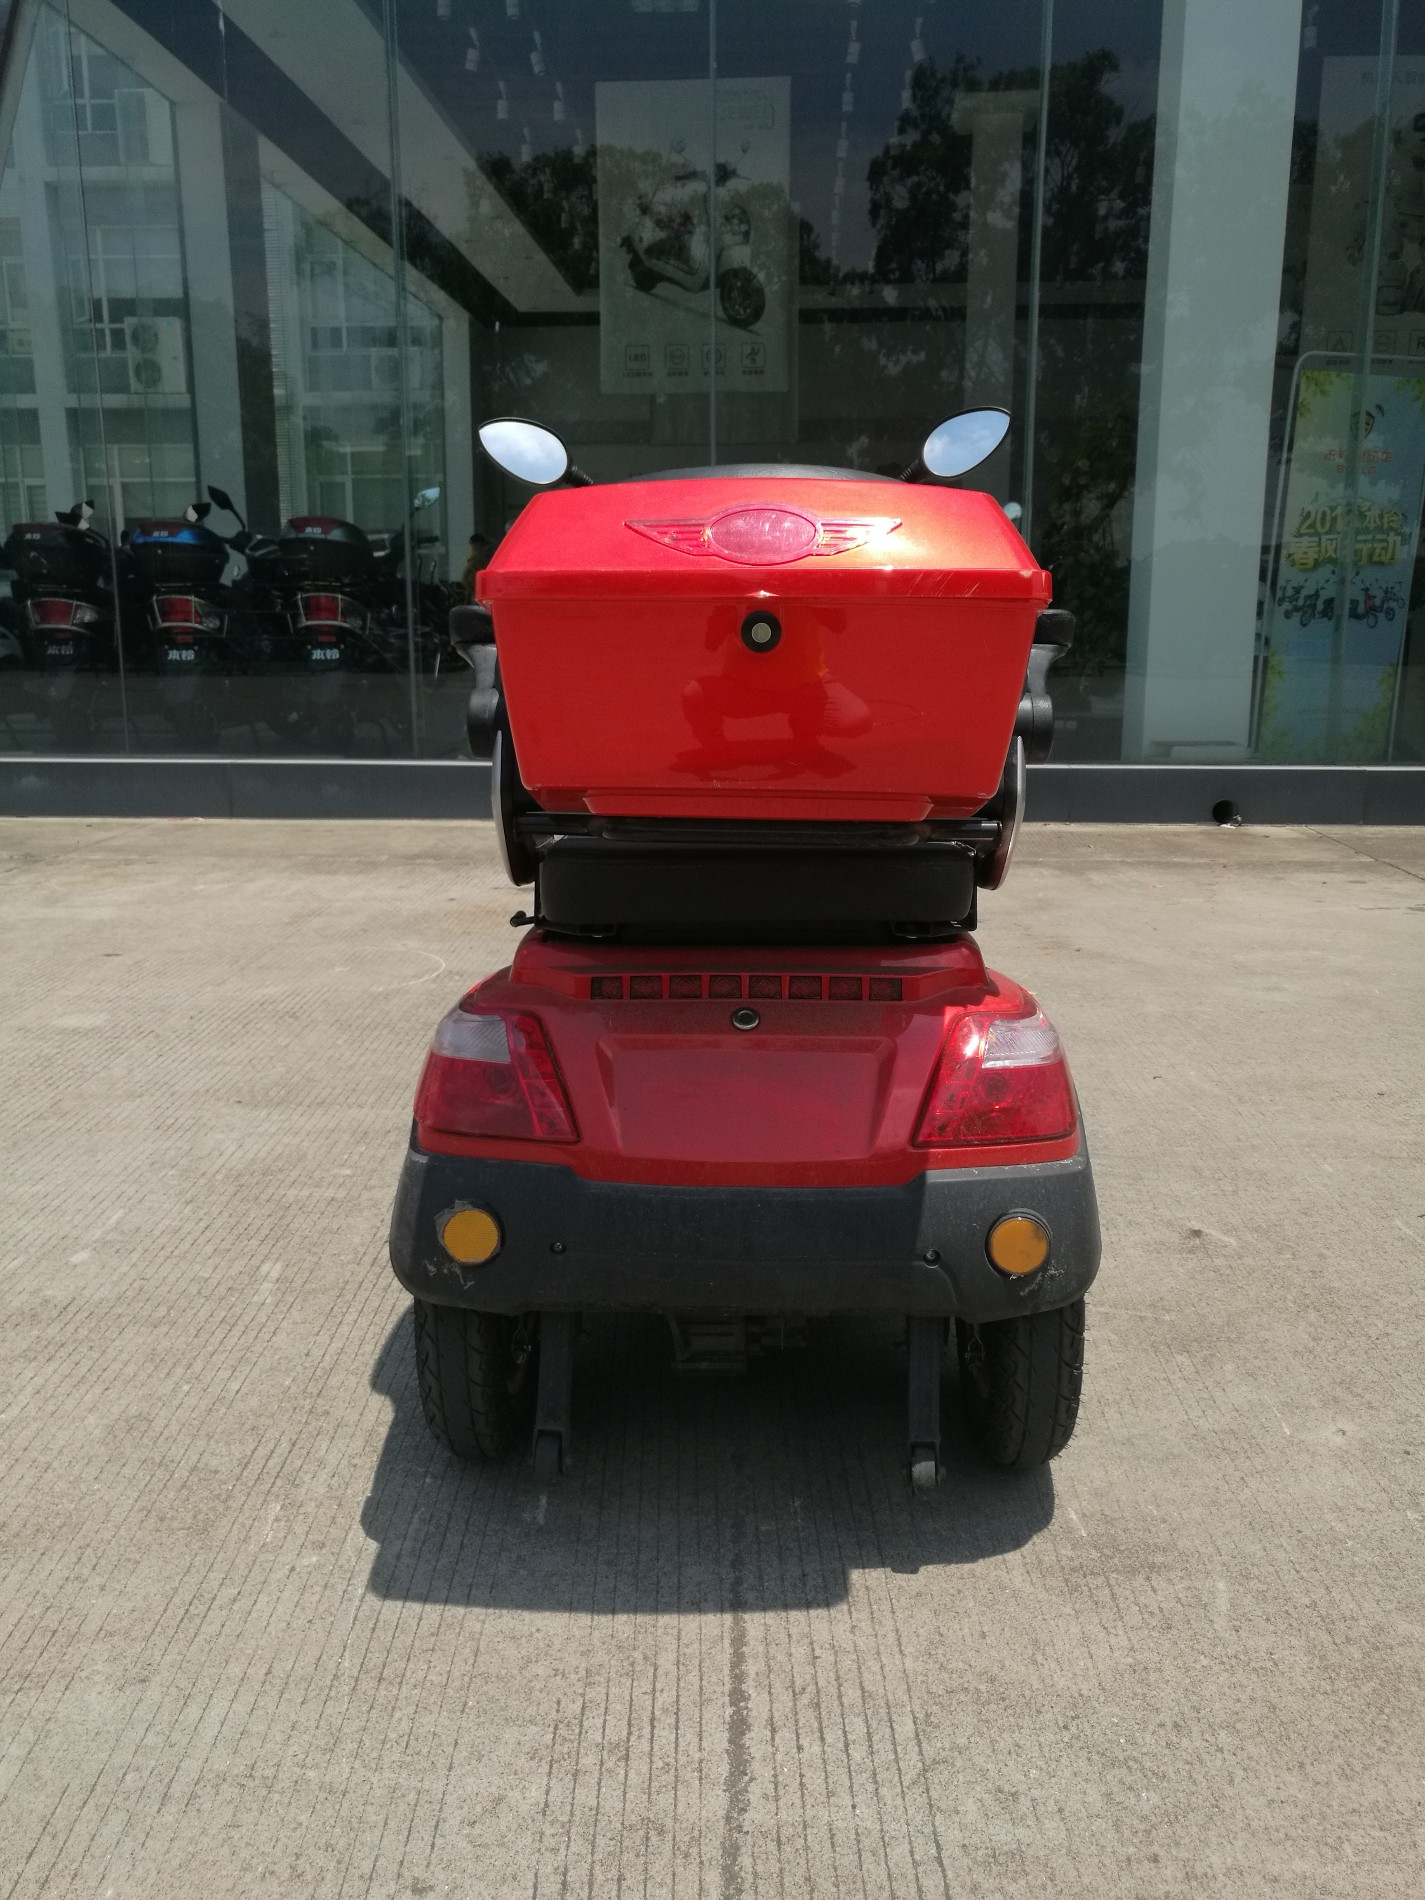 Koop Passenger Electric Tricycle. Passenger Electric Tricycle Prijzen. Passenger Electric Tricycle Brands. Passenger Electric Tricycle Fabrikant. Passenger Electric Tricycle Quotes. Passenger Electric Tricycle Company.